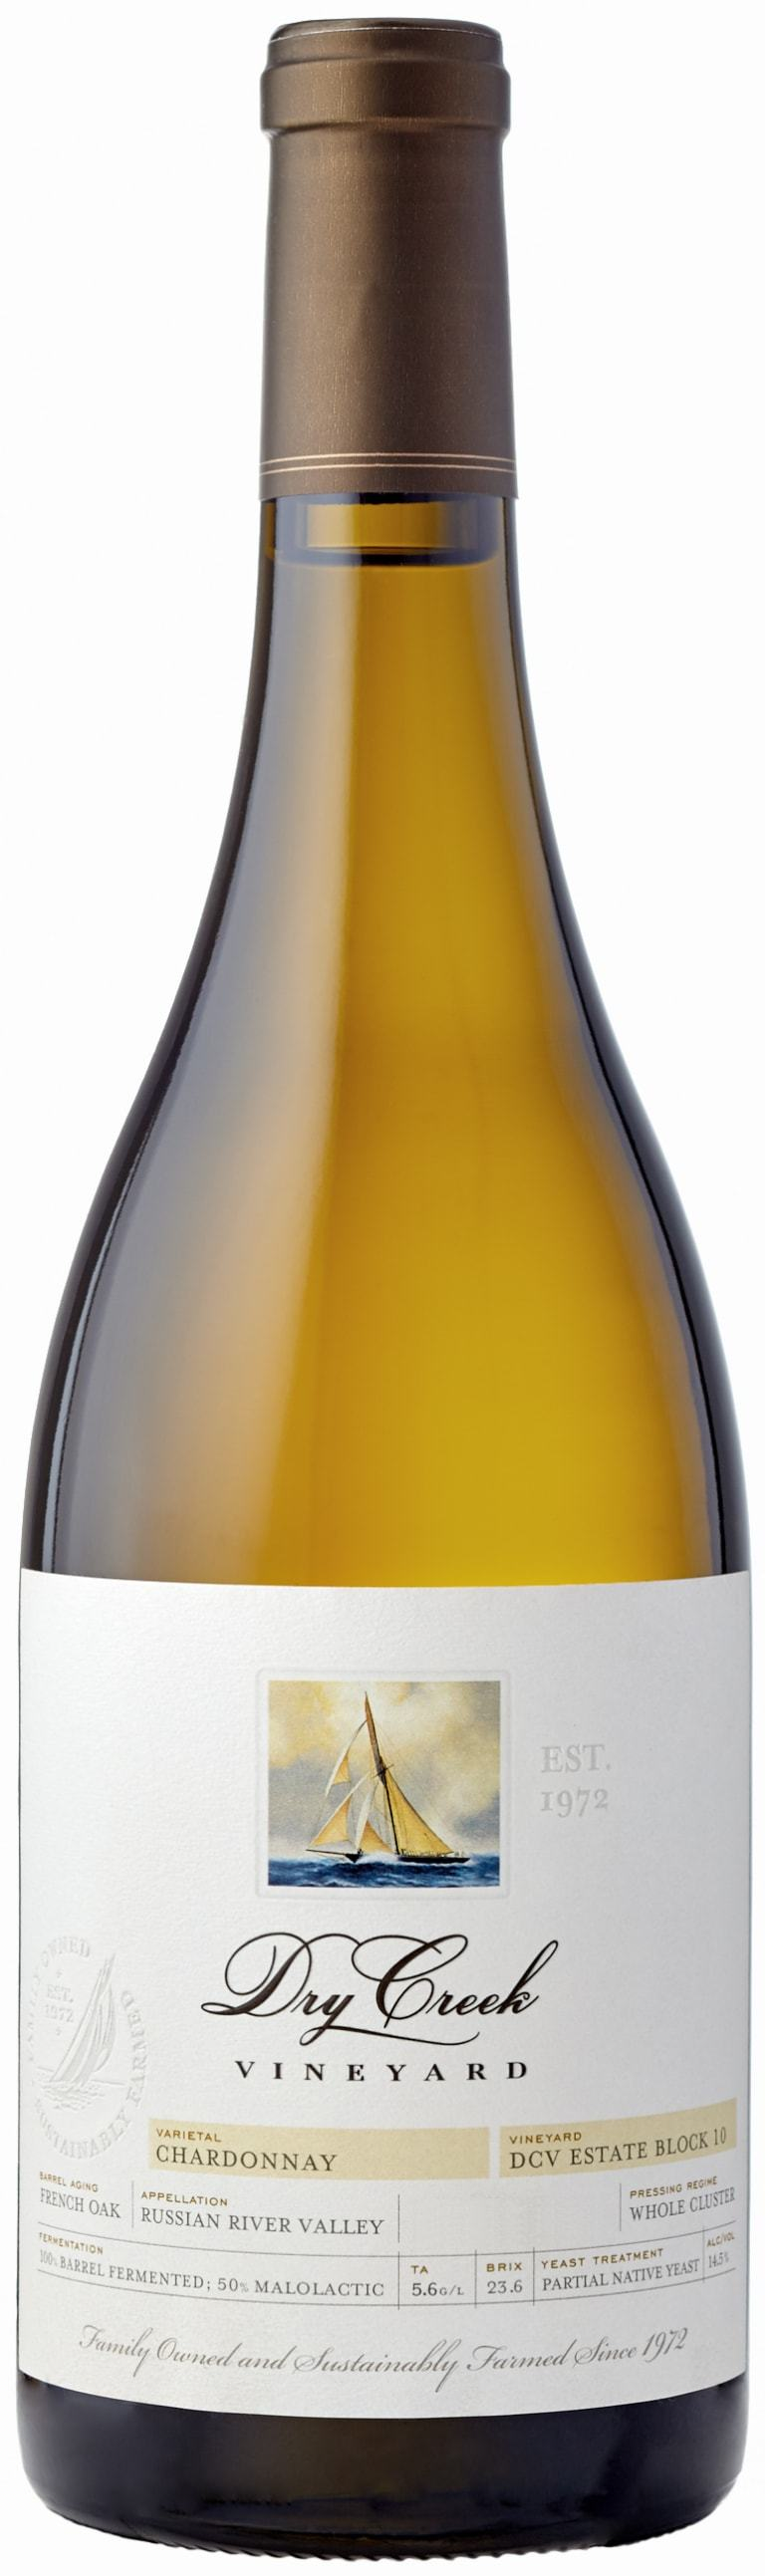 Dry Creek Vineyard Chardonnay Dcv Estate Block 10 2017